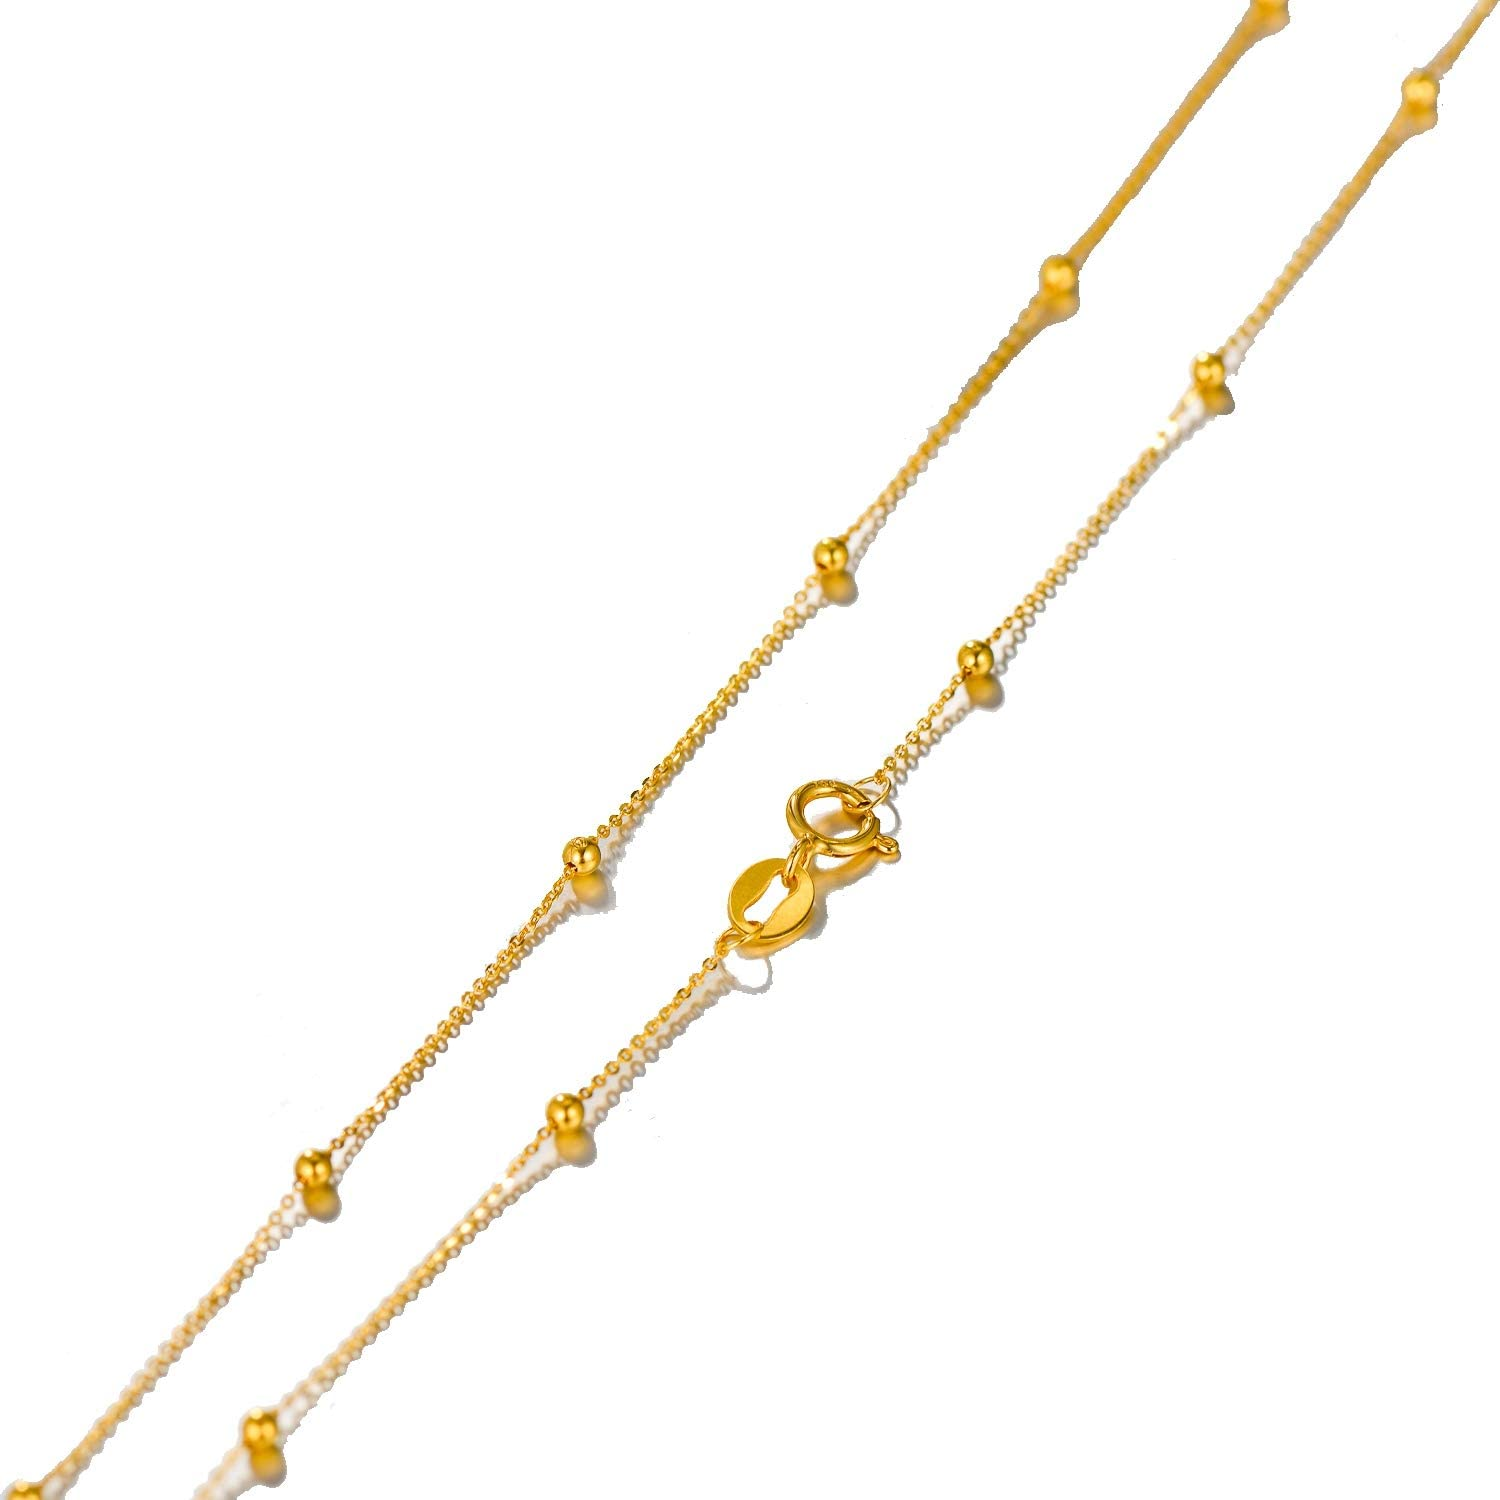 Solid 18k Gold Rosary Bead Ball Chain Necklace for Women, Real Gold Chain Necklace, 18